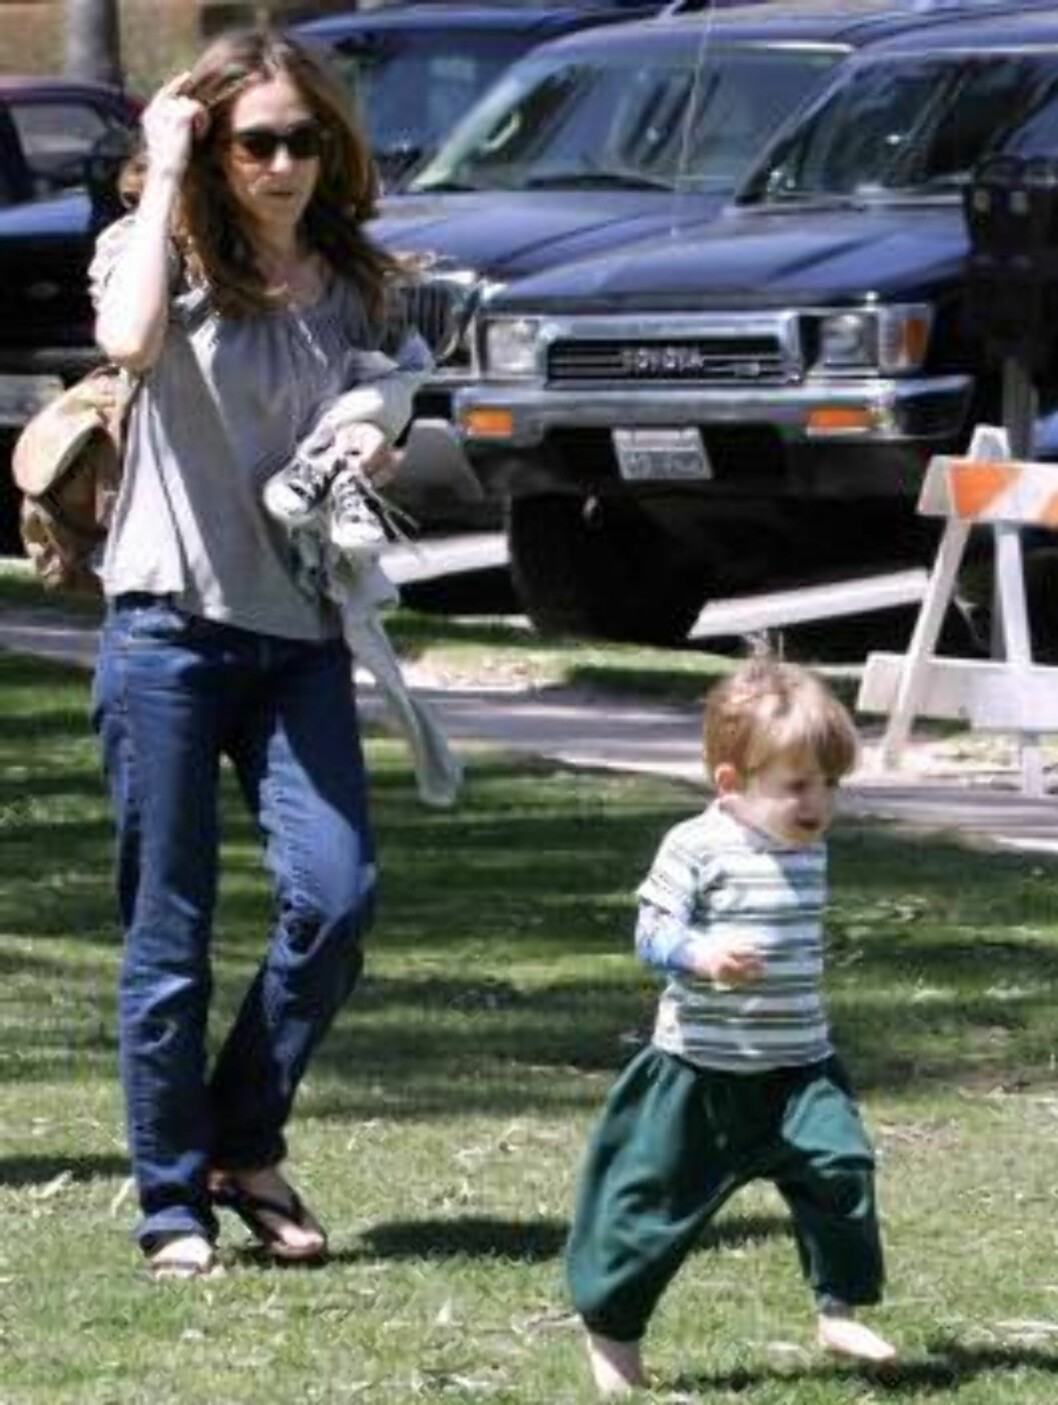 <strong>Code:</strong> X17XX8 - Madison, Santa Monica, USA, 16.04.2005: Sarah Jessica Parker playing with son James at a park in Santa Monica , California, climbing trees, running. All Over Press / X17 Agency / Madison      EXCLUSIVE  / ALL OVER PRESS Foto: All Over Press